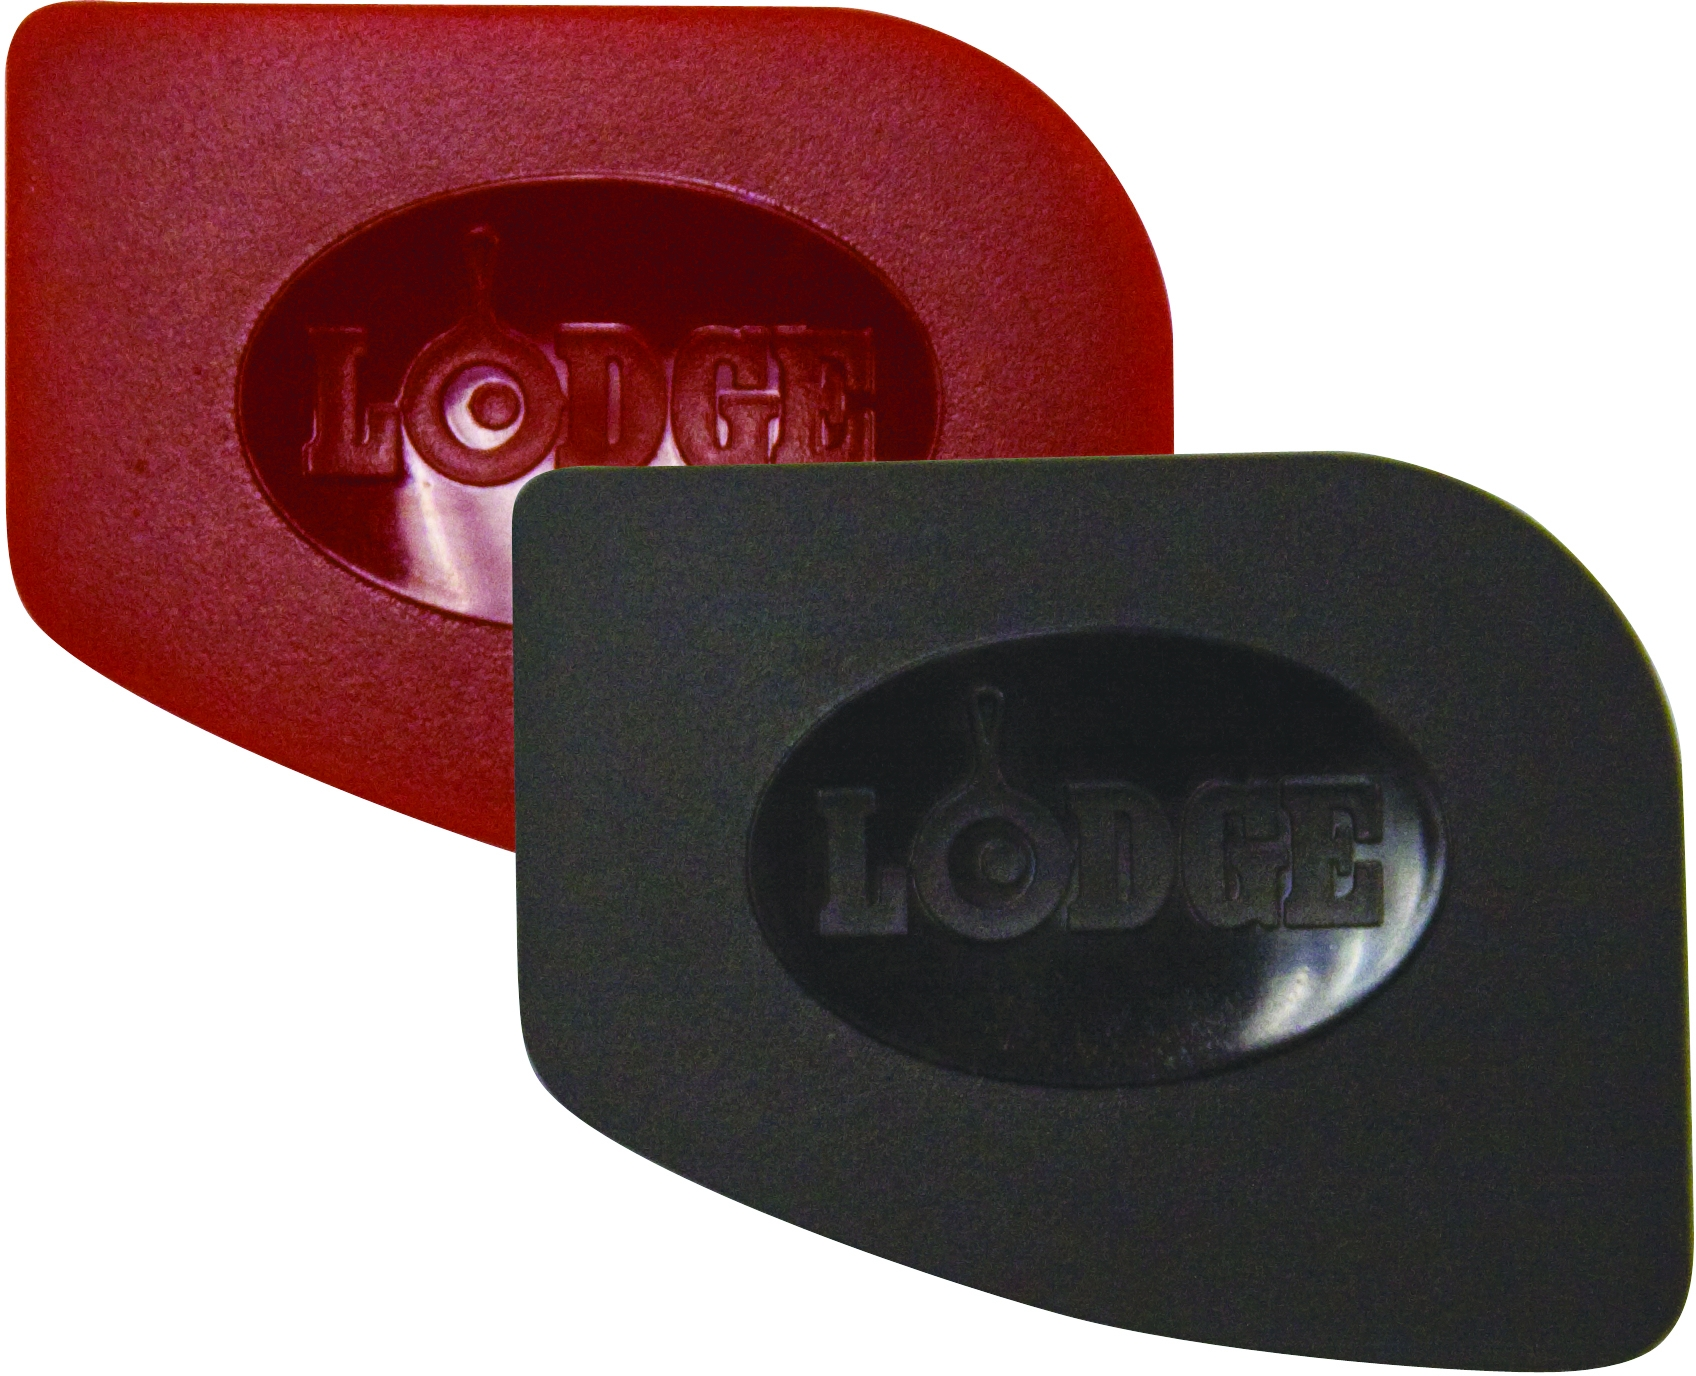 Lodge Red and Black Polycarbonate 2 Piece Pan Scraper Set